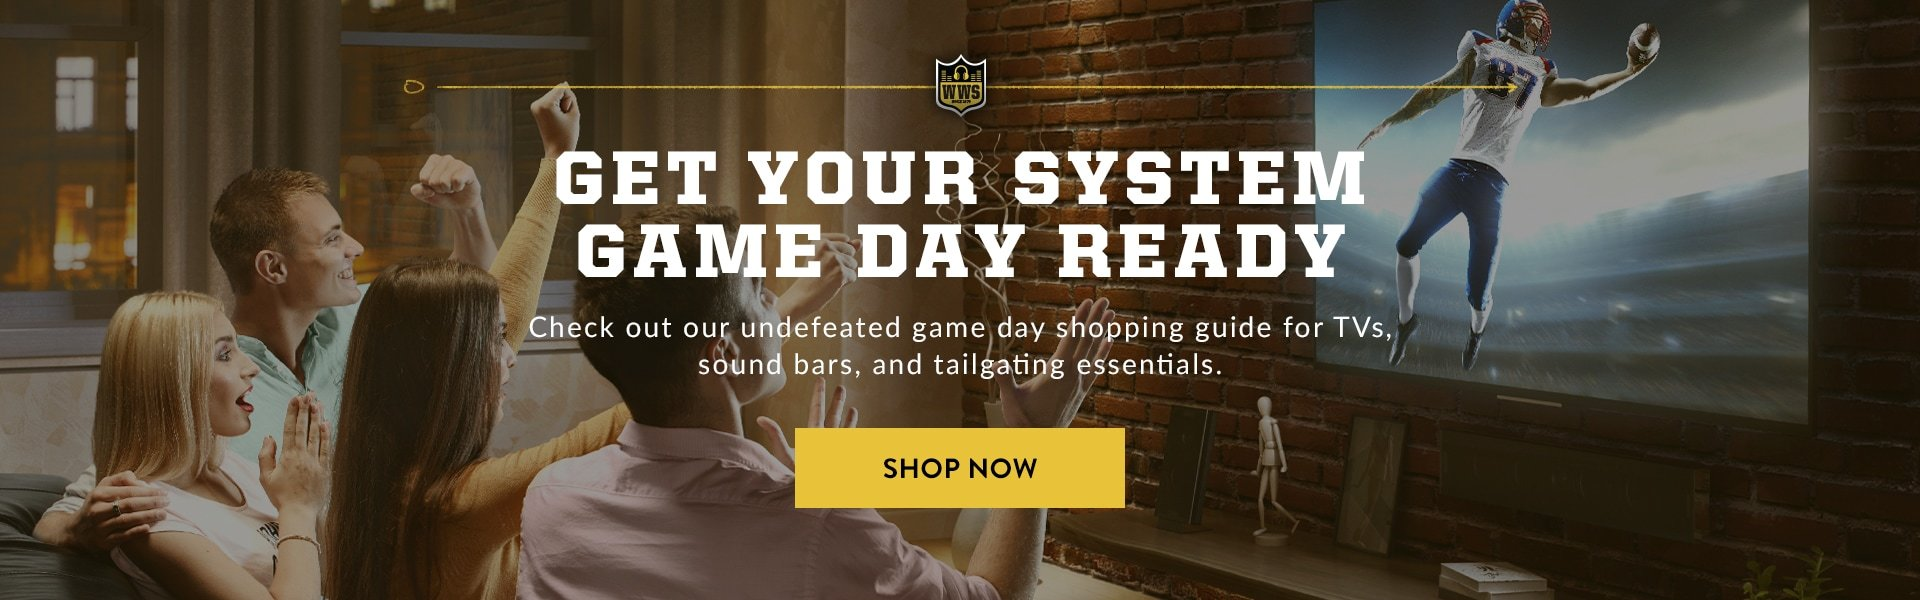 Football Sales & Gear for Game Day